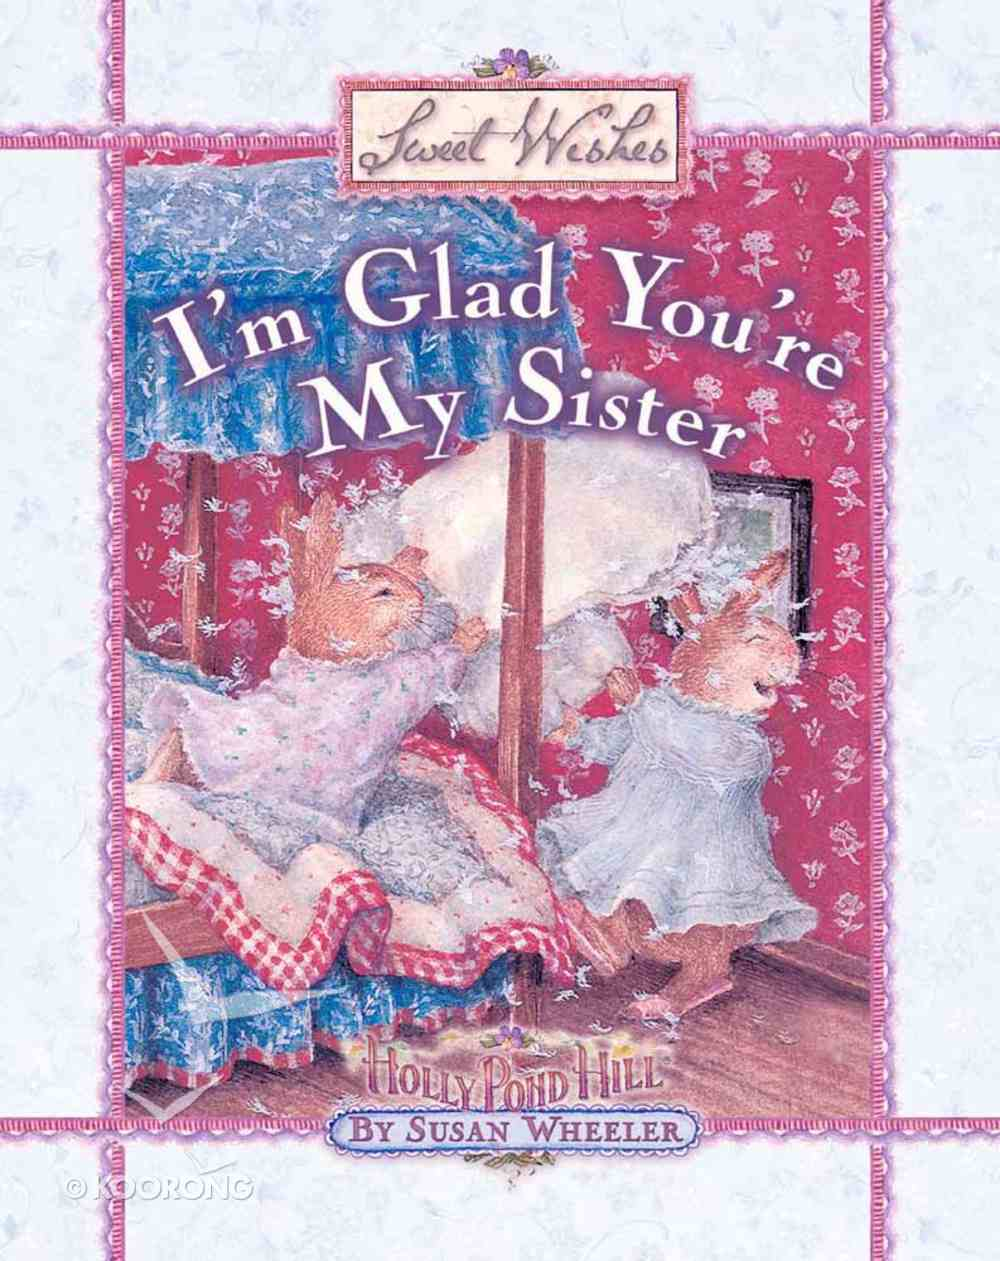 Sweet Wishes: I'm Glad You're My Sister Hardback